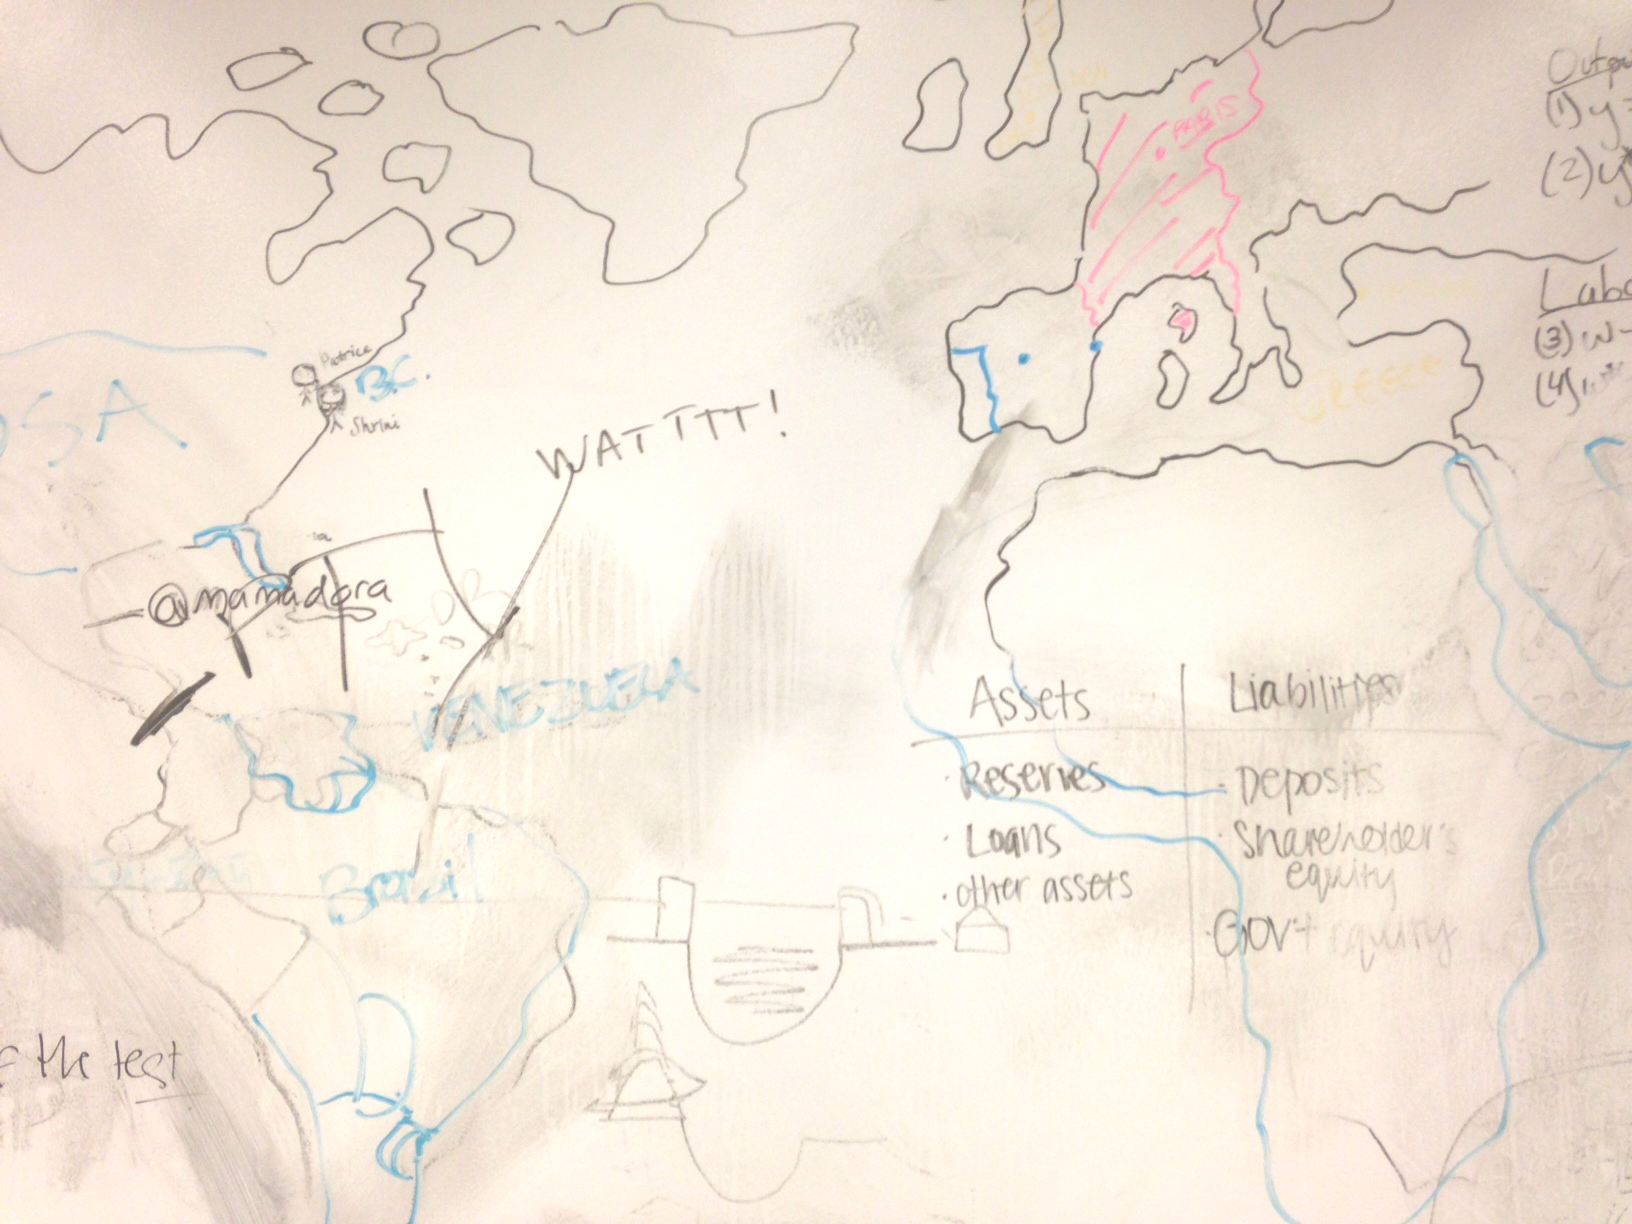 Photo of student-drawn maps and notes on dry-erase wall in study area